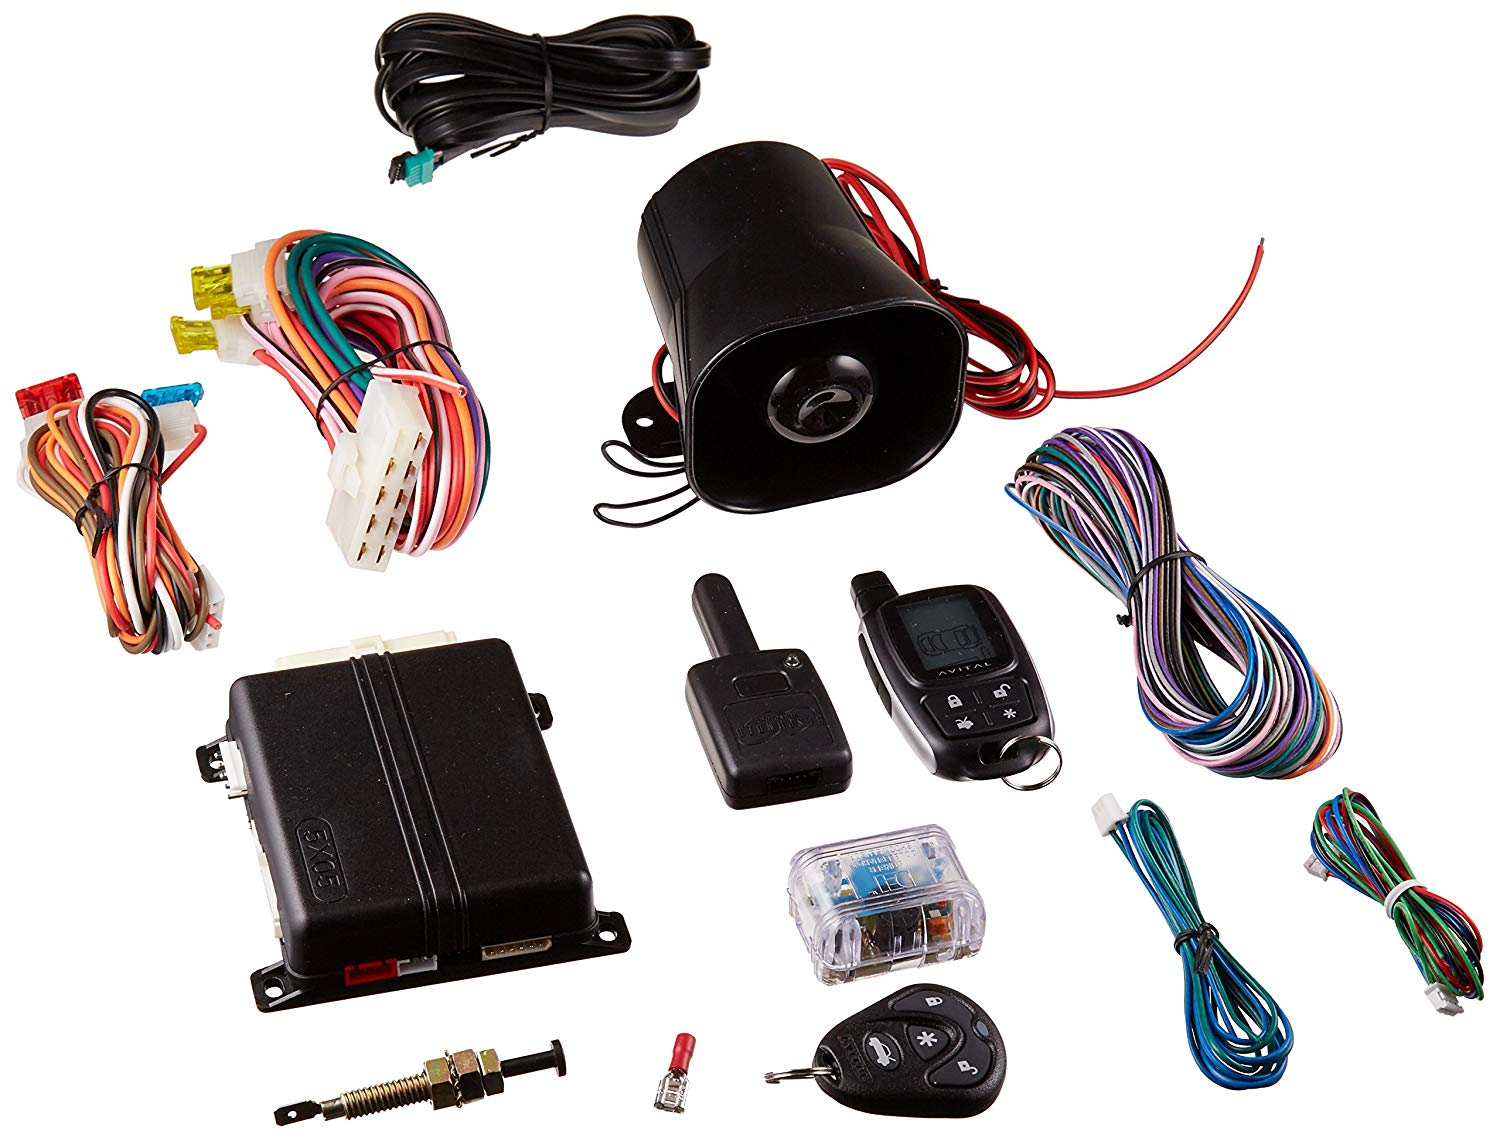 Avital 5305L 2-way car alarm system